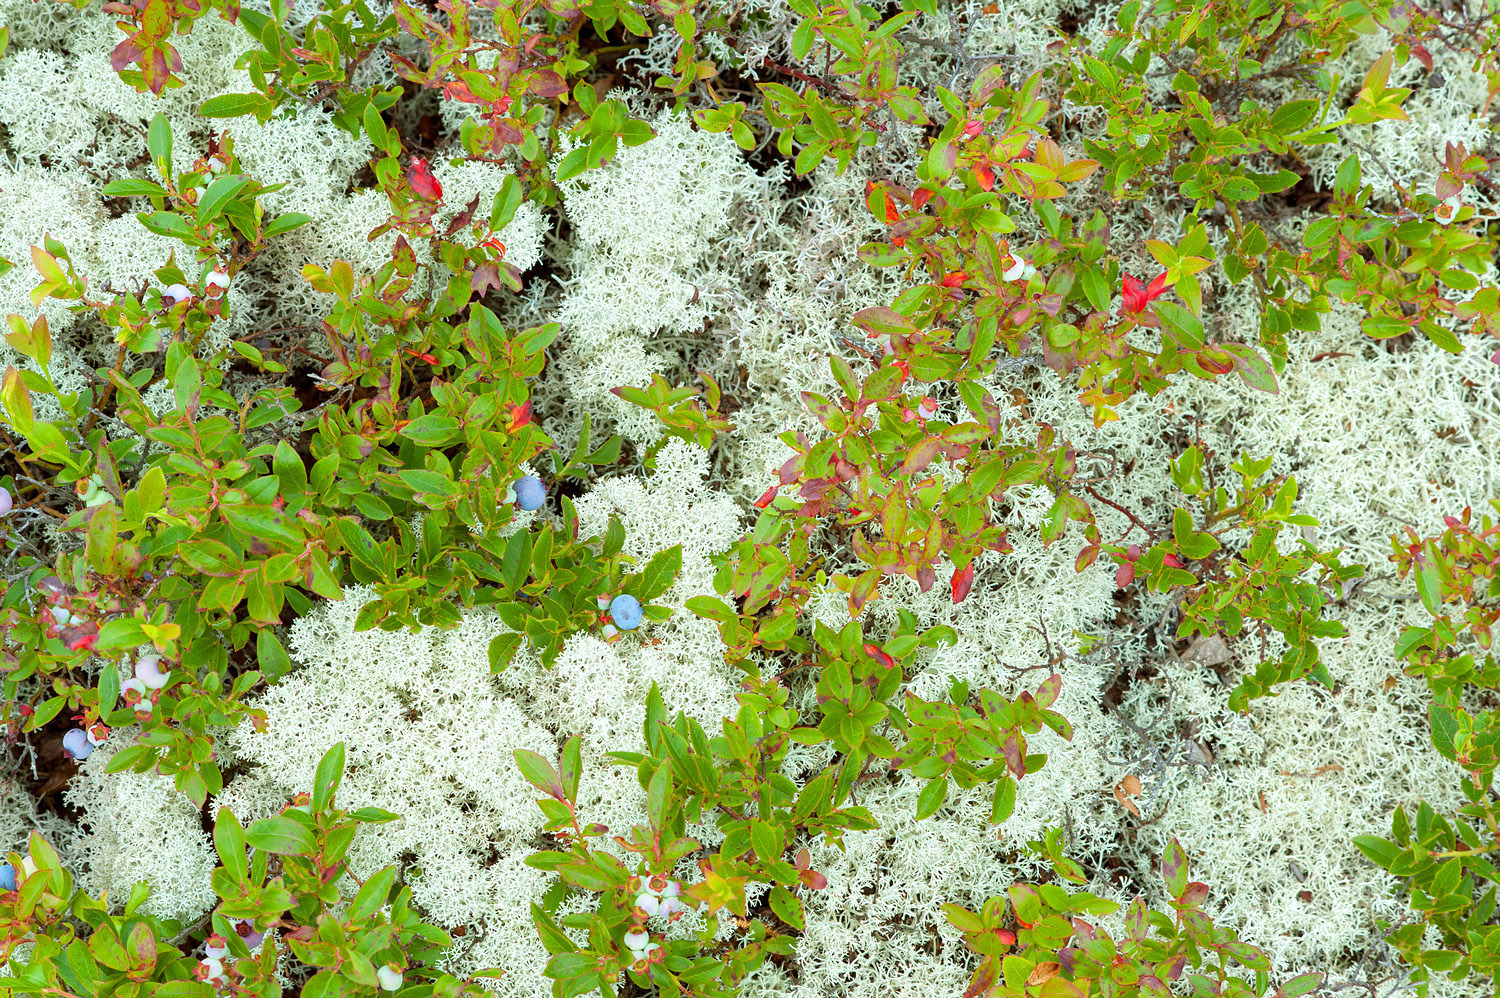 Reindeer Lichen & Wild Blueberries